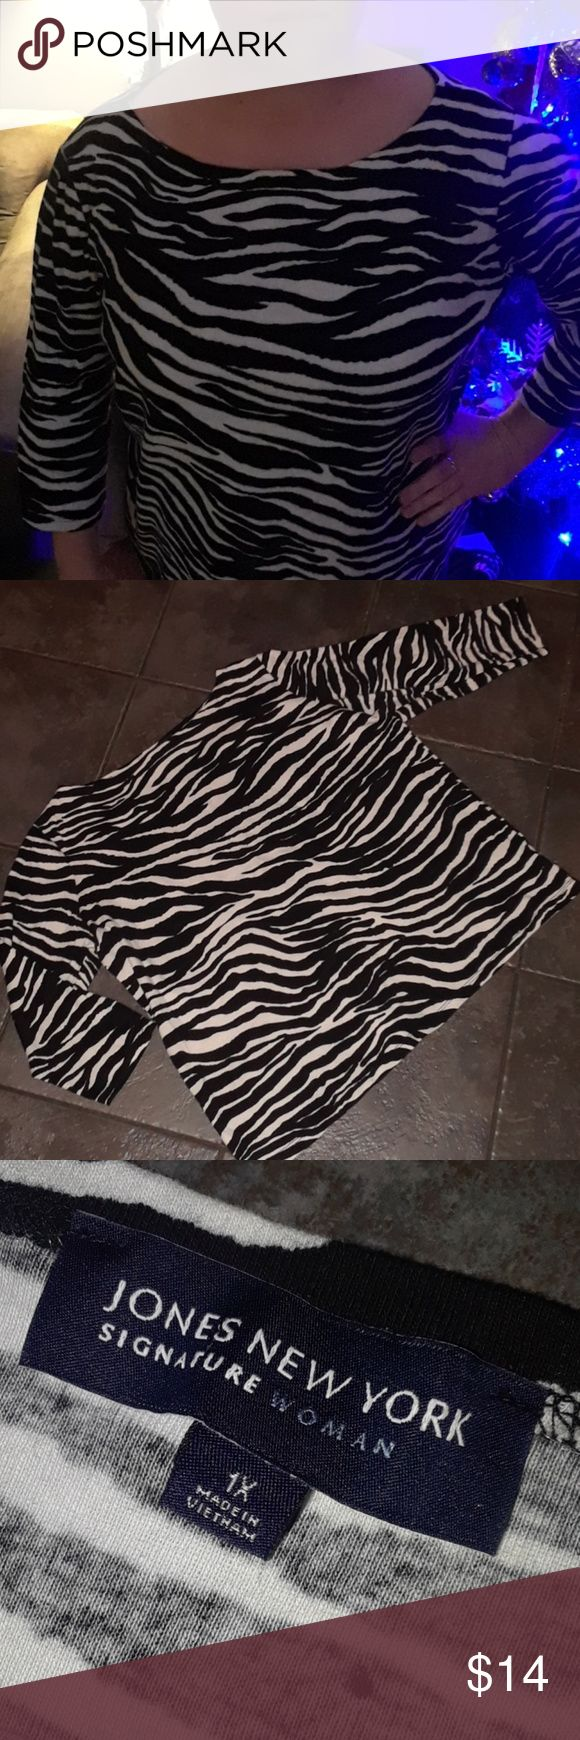 Woman's 1X Jones New York Zebra Print Top black Smoke Free and clean home!  Bundle up to 5lbs to get the most from your buck and save on shipping!  I have more woman's clothing along with Mens, boys, girls and infants.  Cheetah blouse tee shirt casual work office Many sizes.  S M L XL XXL Juniors Petite 6 7 8 9 10 12 14 16 Small Medium Large plus   🛍 Woman's black and white zebra animal print Top size 1X  JONES NEW YORK SIGNATURE WOMAN   100% Cotton 3/4 length sleeve Gently worn and is in…